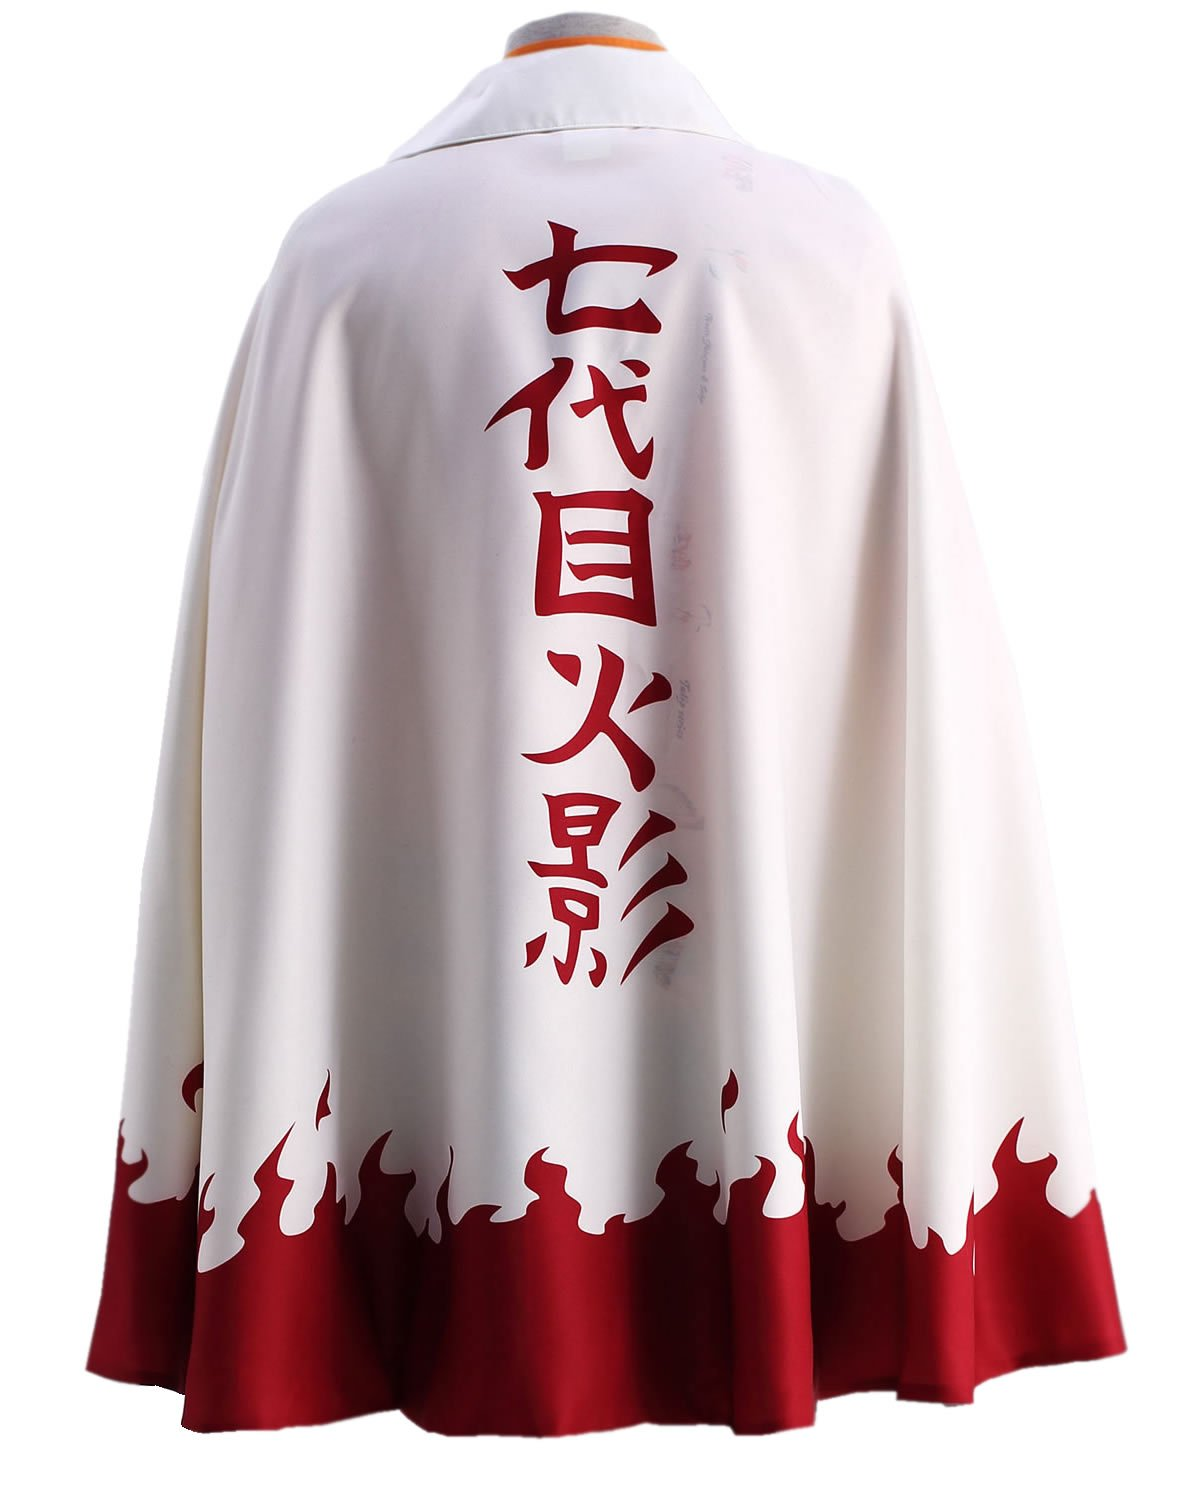 OURCOSPLAY US Size Men's Uzumaki Cloak 7th Hokage Cloak Boruto Cosplay Costume (Men US XL) by OURCOSPLAY (Image #1)